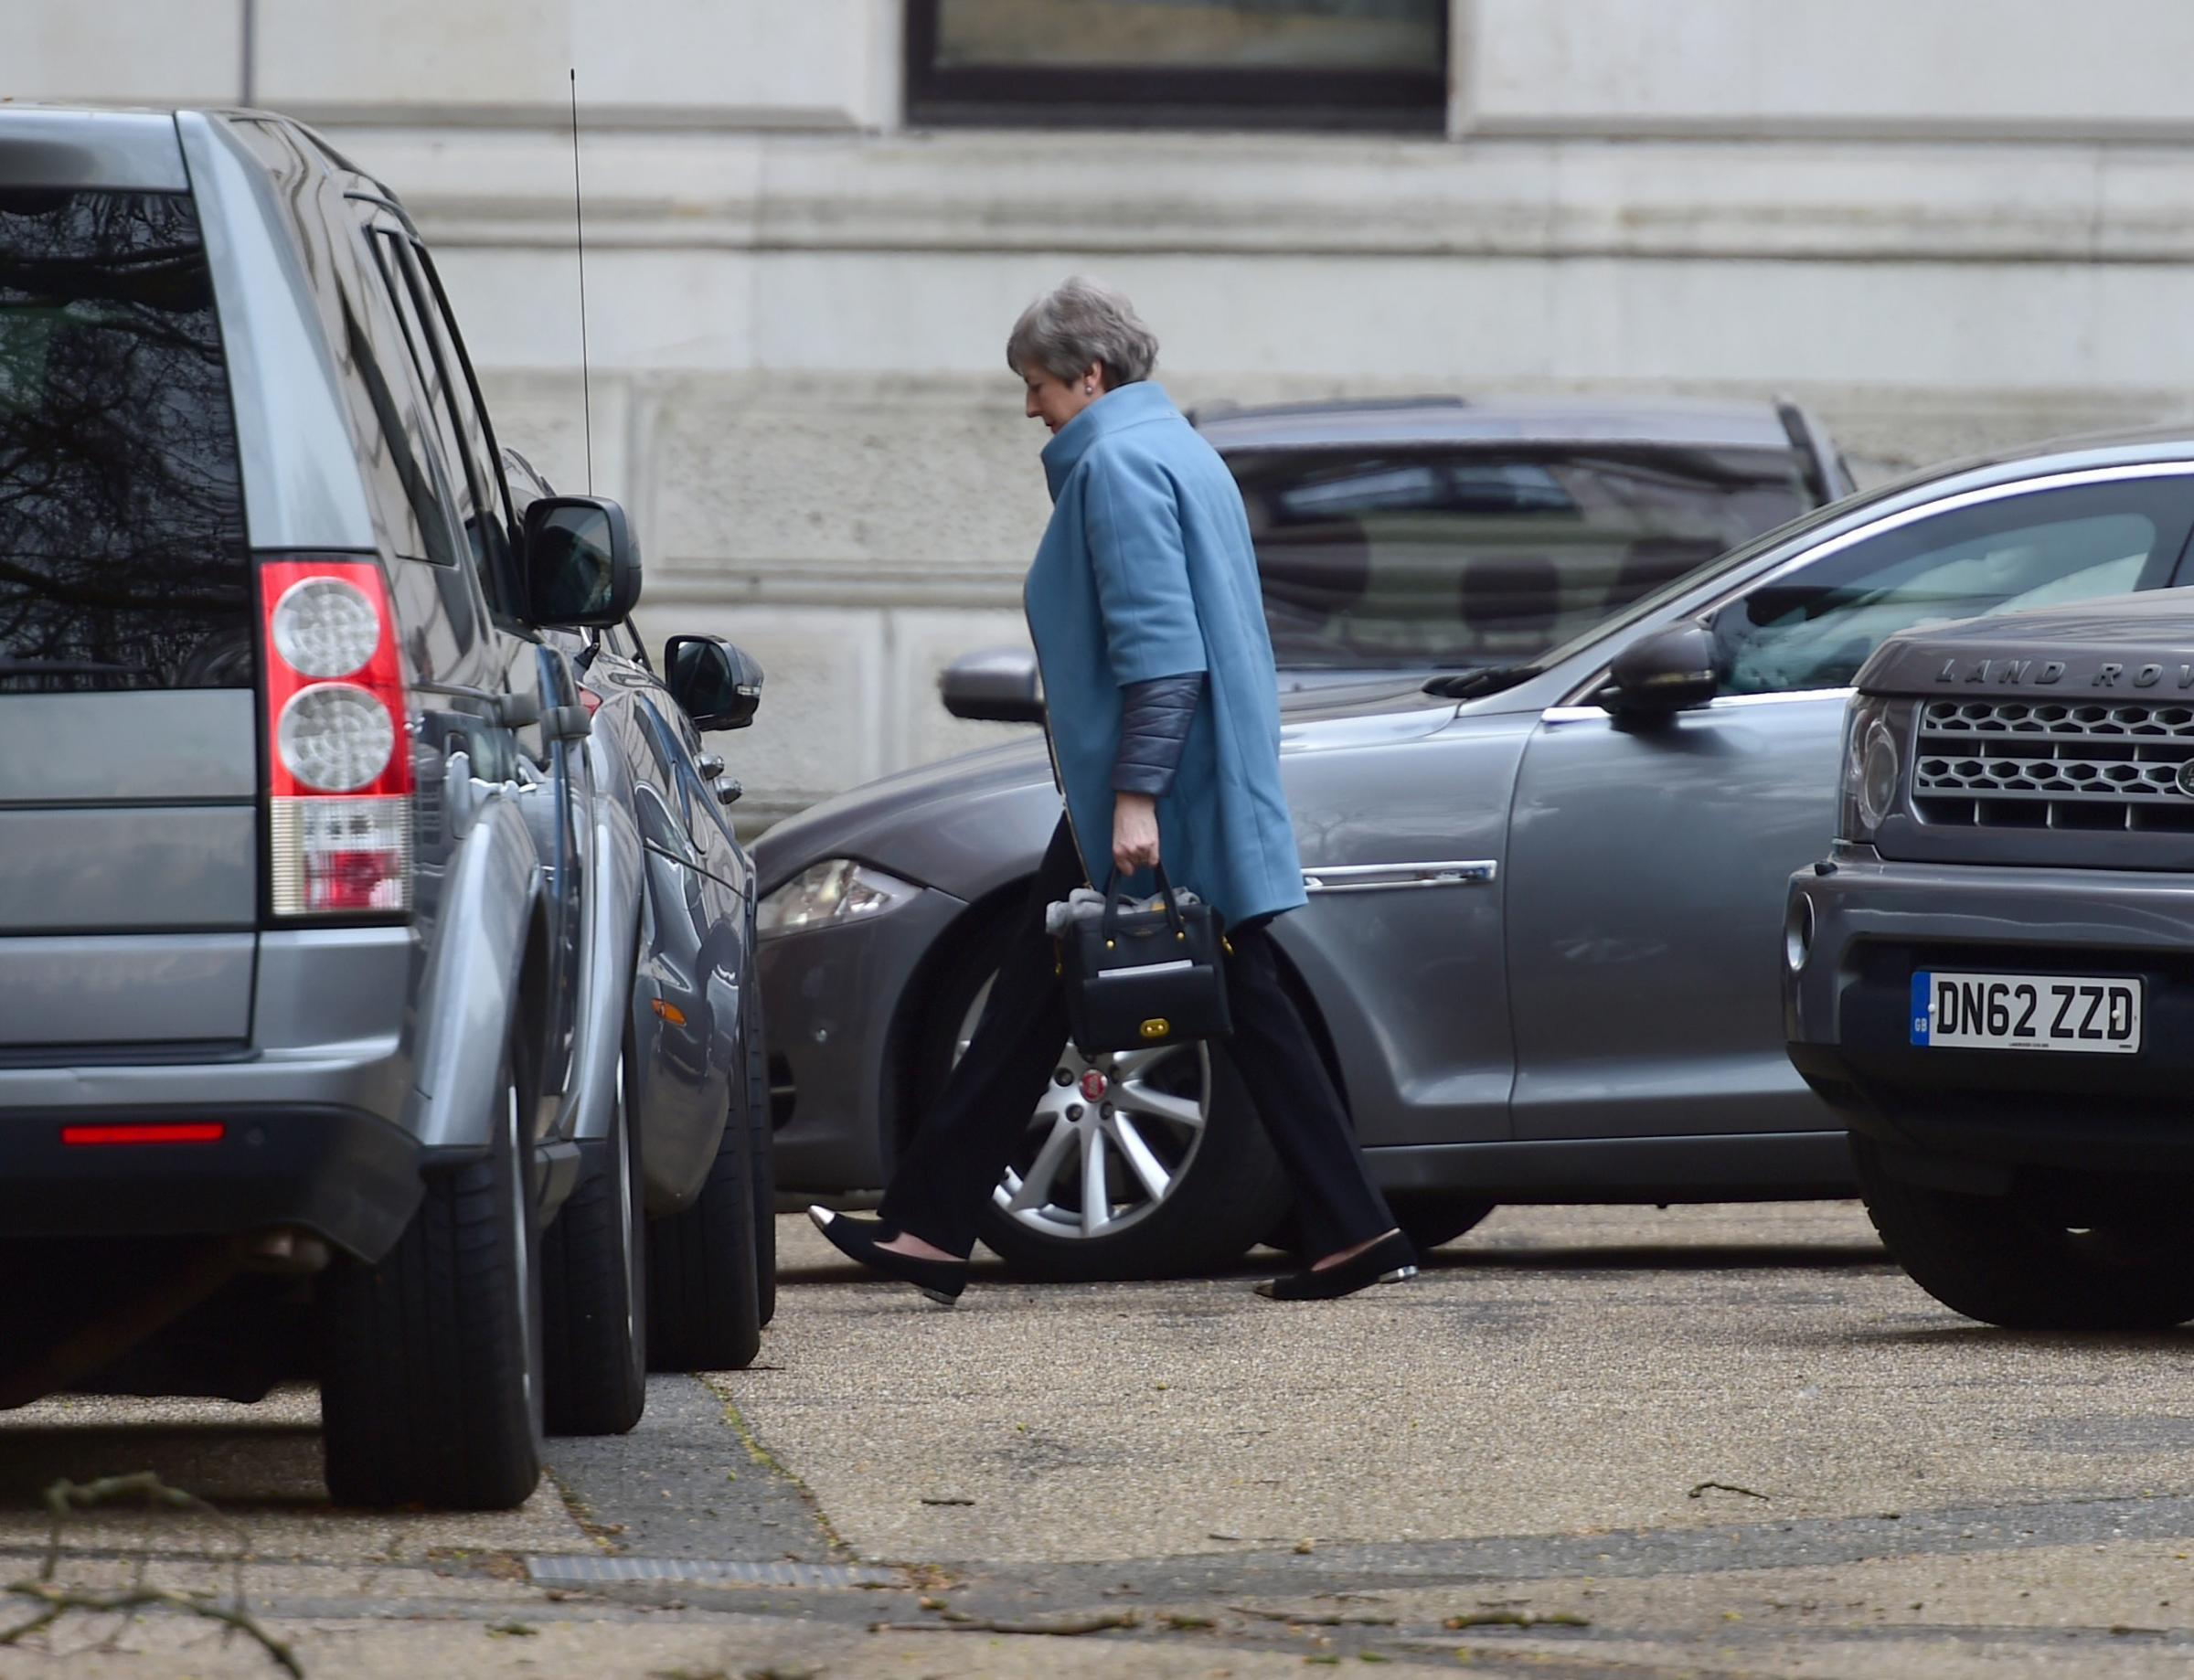 Prime Minister Theresa May arrives at Downing Street in London. PRESS ASSOCIATION Photo. Picture date: Monday March 18, 2019. See PA story POLITICS Brexit. Photo credit should read: David Mirzoeff/PA Wire